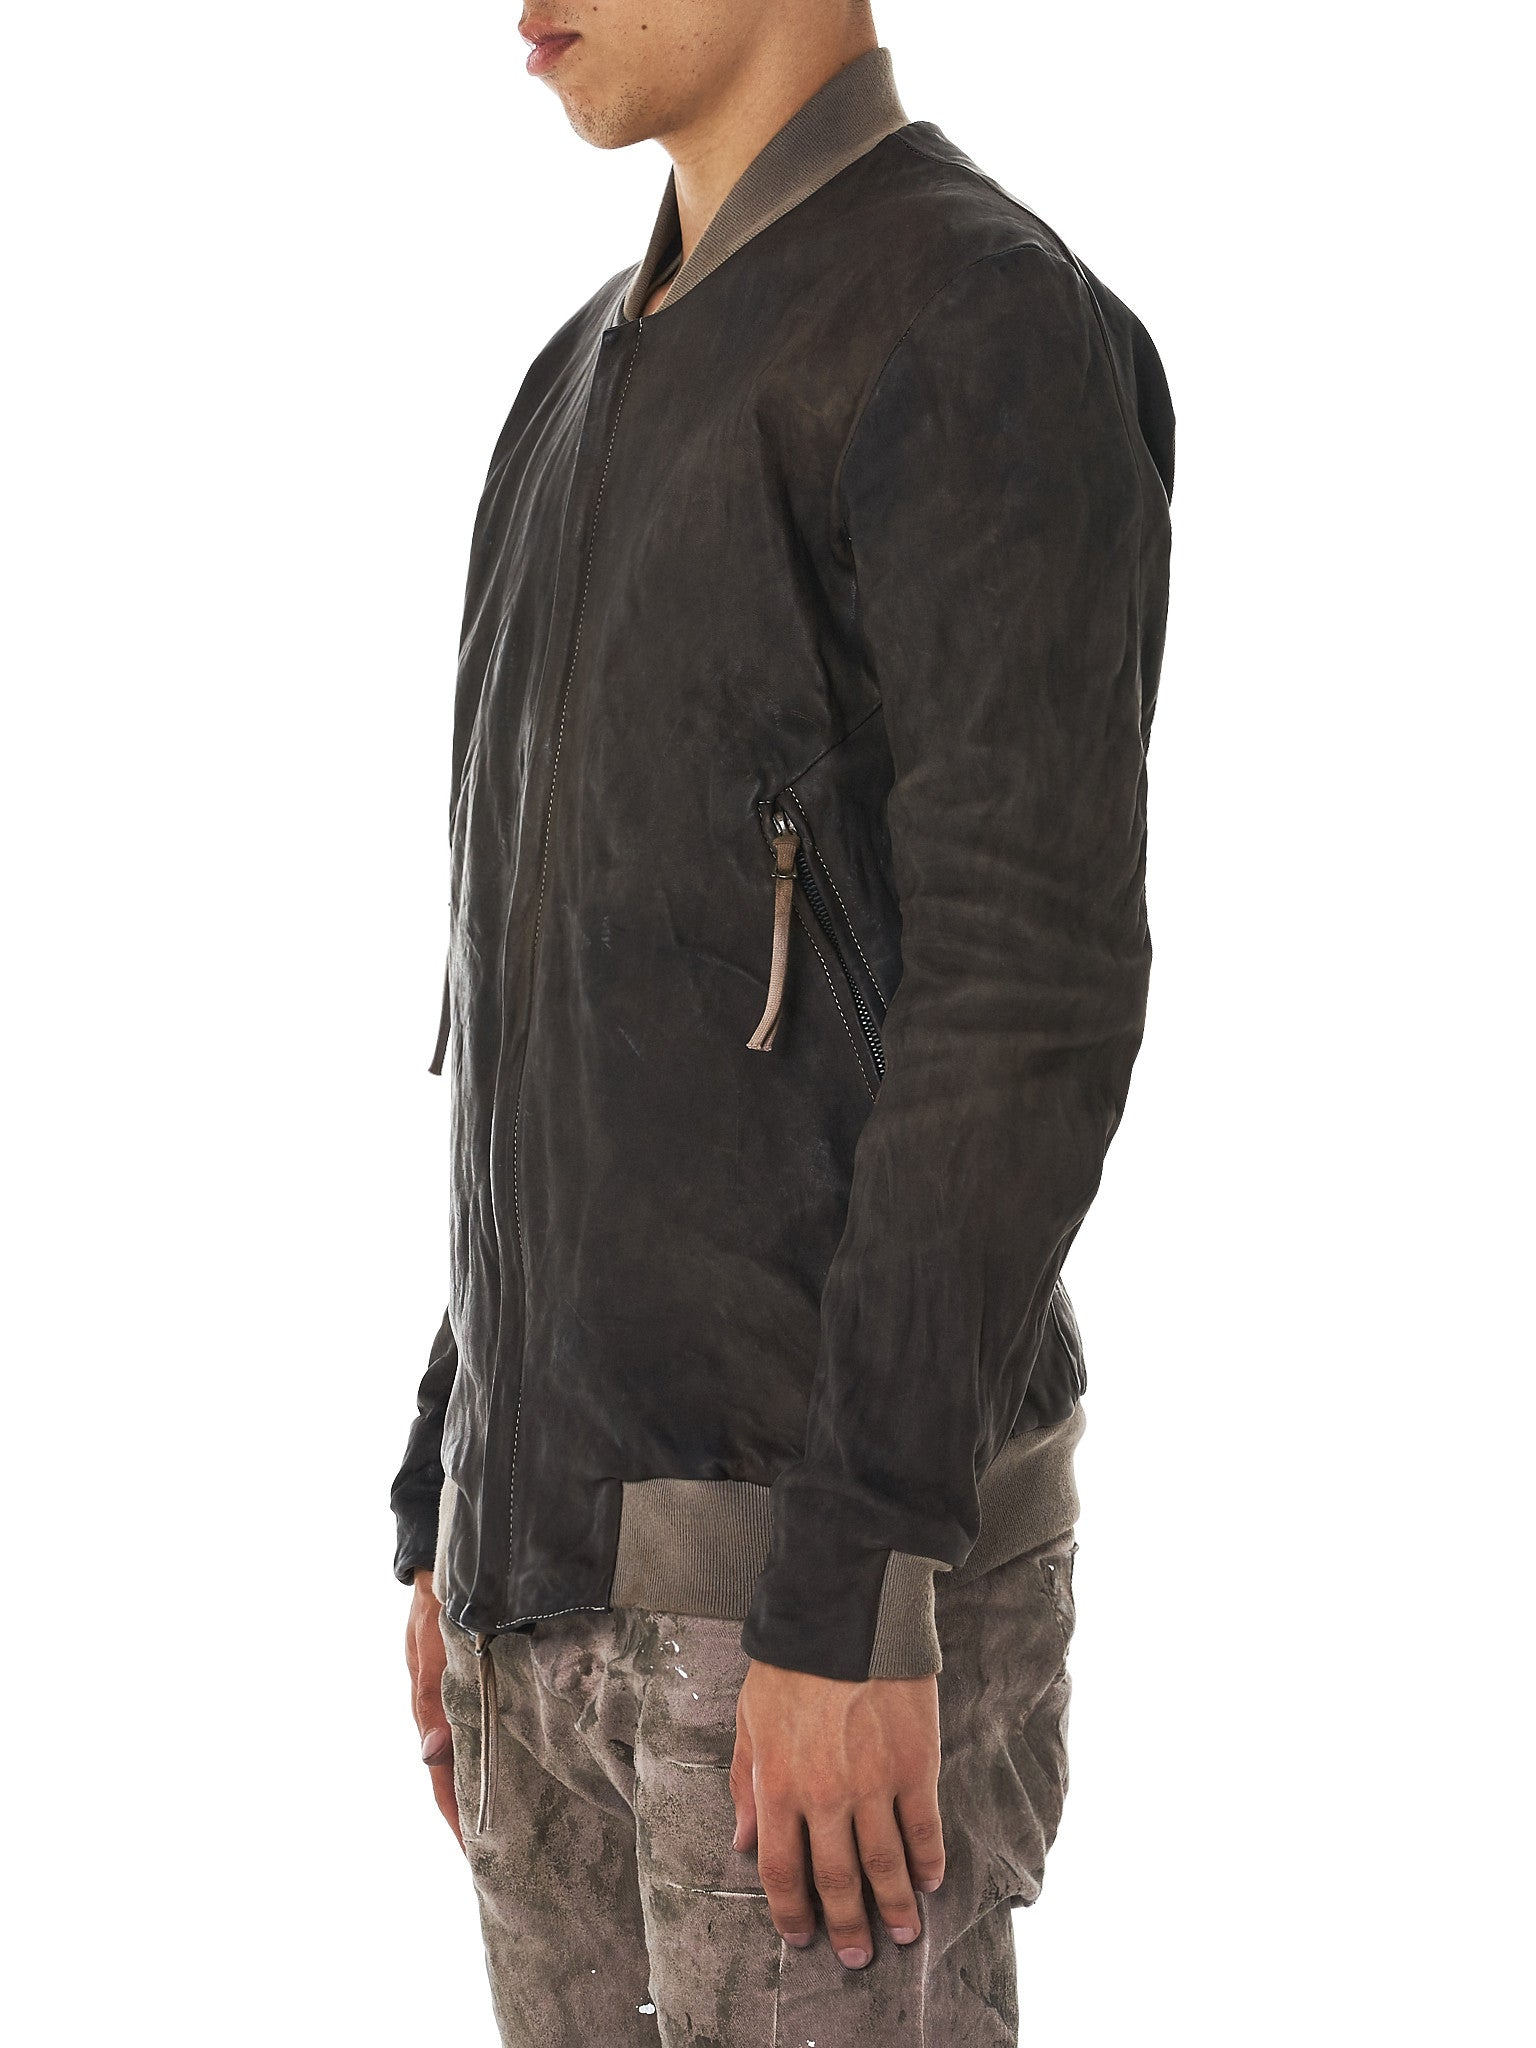 Boris Bidjan Saberi - Hlorenzo Side View